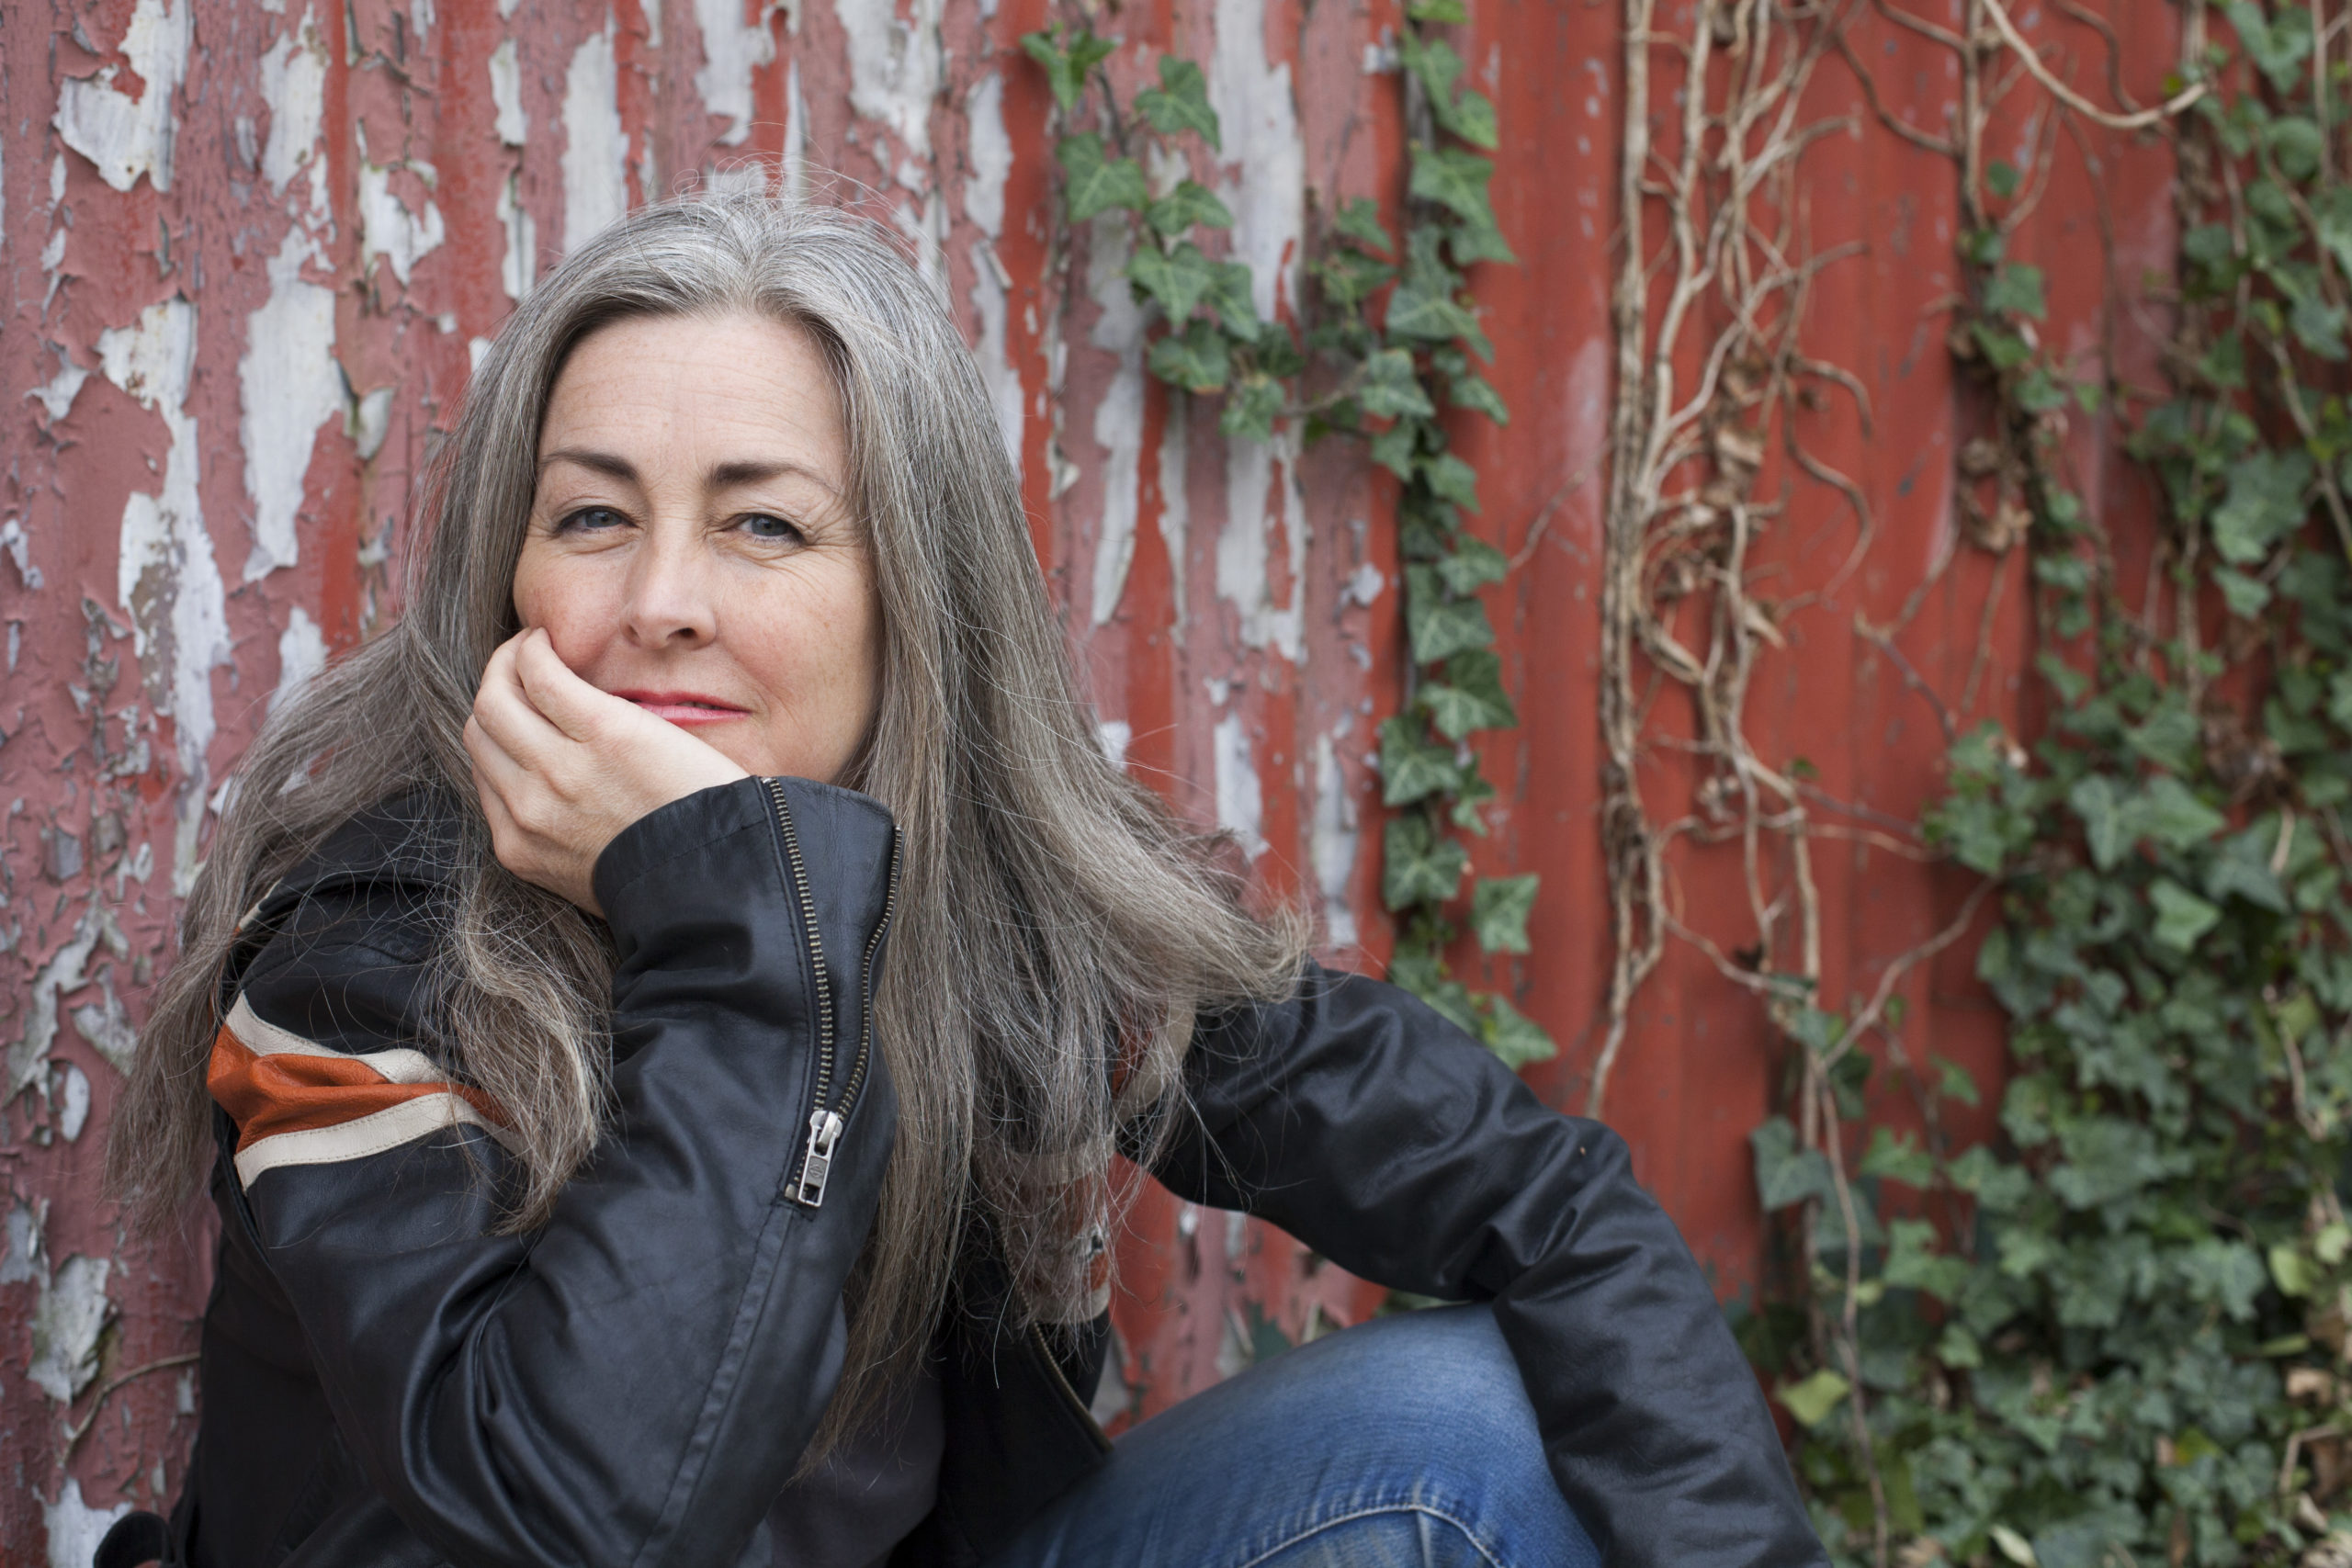 Polly Higgins – co-founder of Stop Ecocide